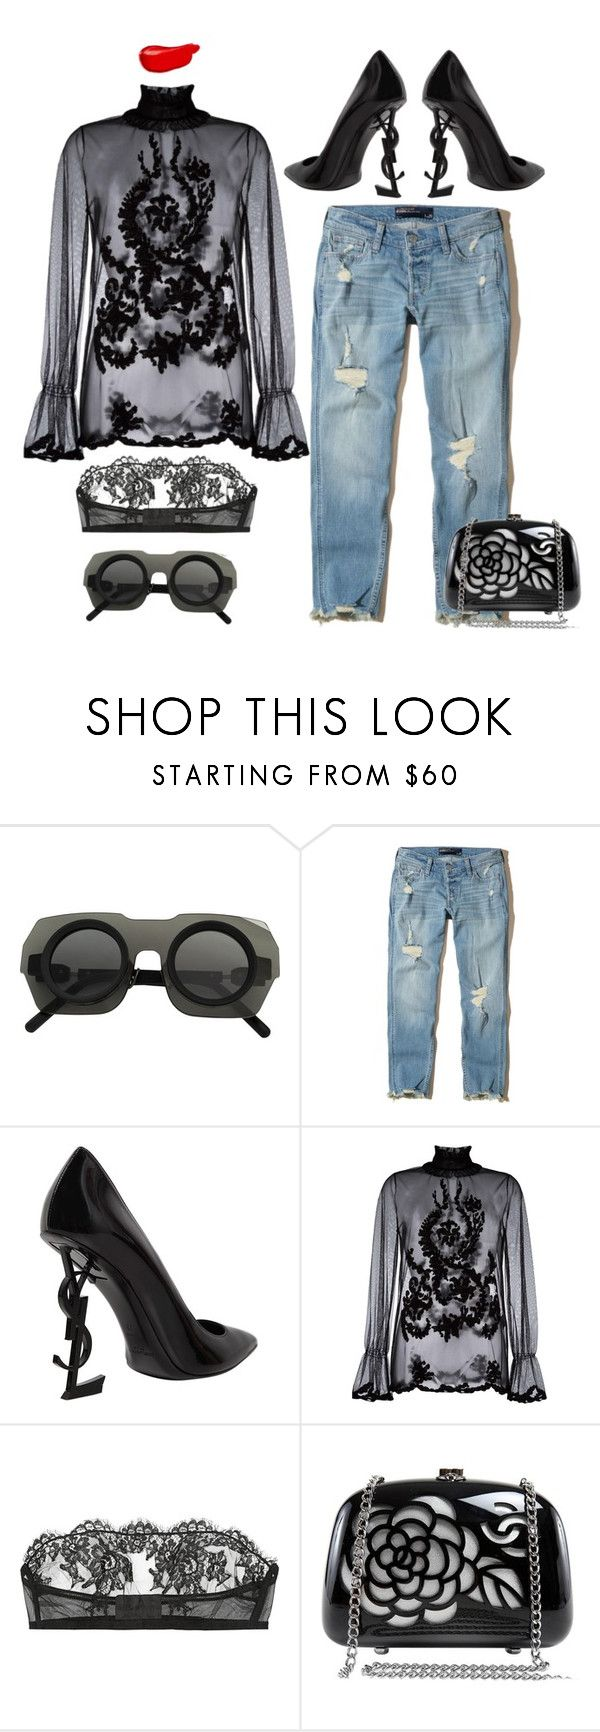 """""""IT!"""" by maria-laura-correa-da-silva ❤ liked on Polyvore featuring Kuboraum, Hollister Co., Yves Saint Laurent, Blugirl, I.D. SARRIERI, Chanel and Burberry"""